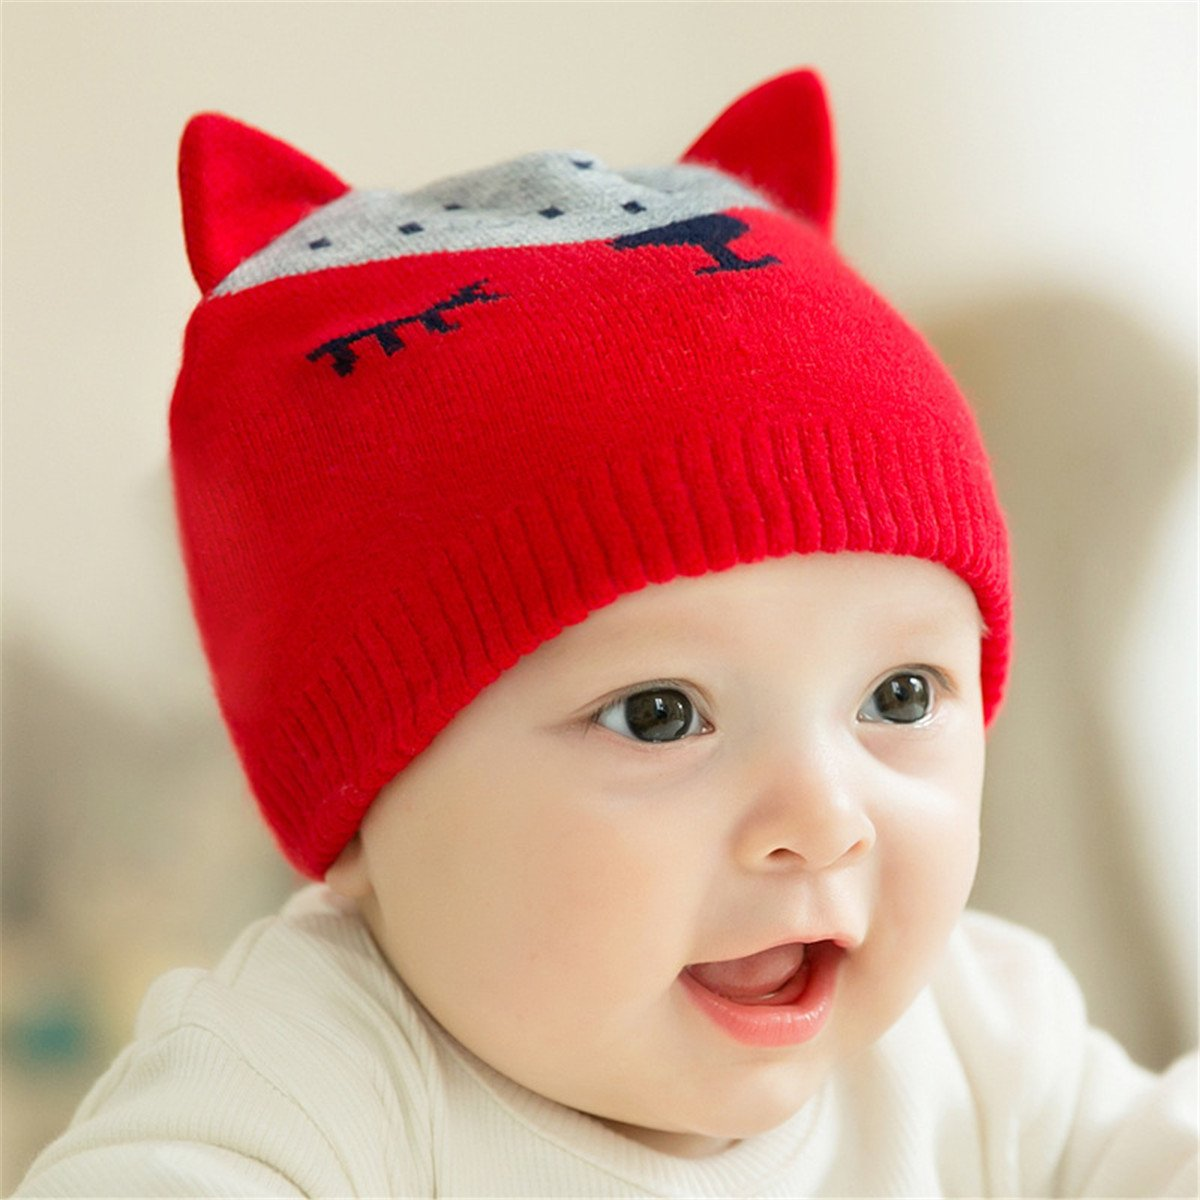 Fighting to Achieve Winter Warm Woolen Yarn Knitted Fox Printed Toddler Beanie Cap Hats for Baby Boys /& Girls